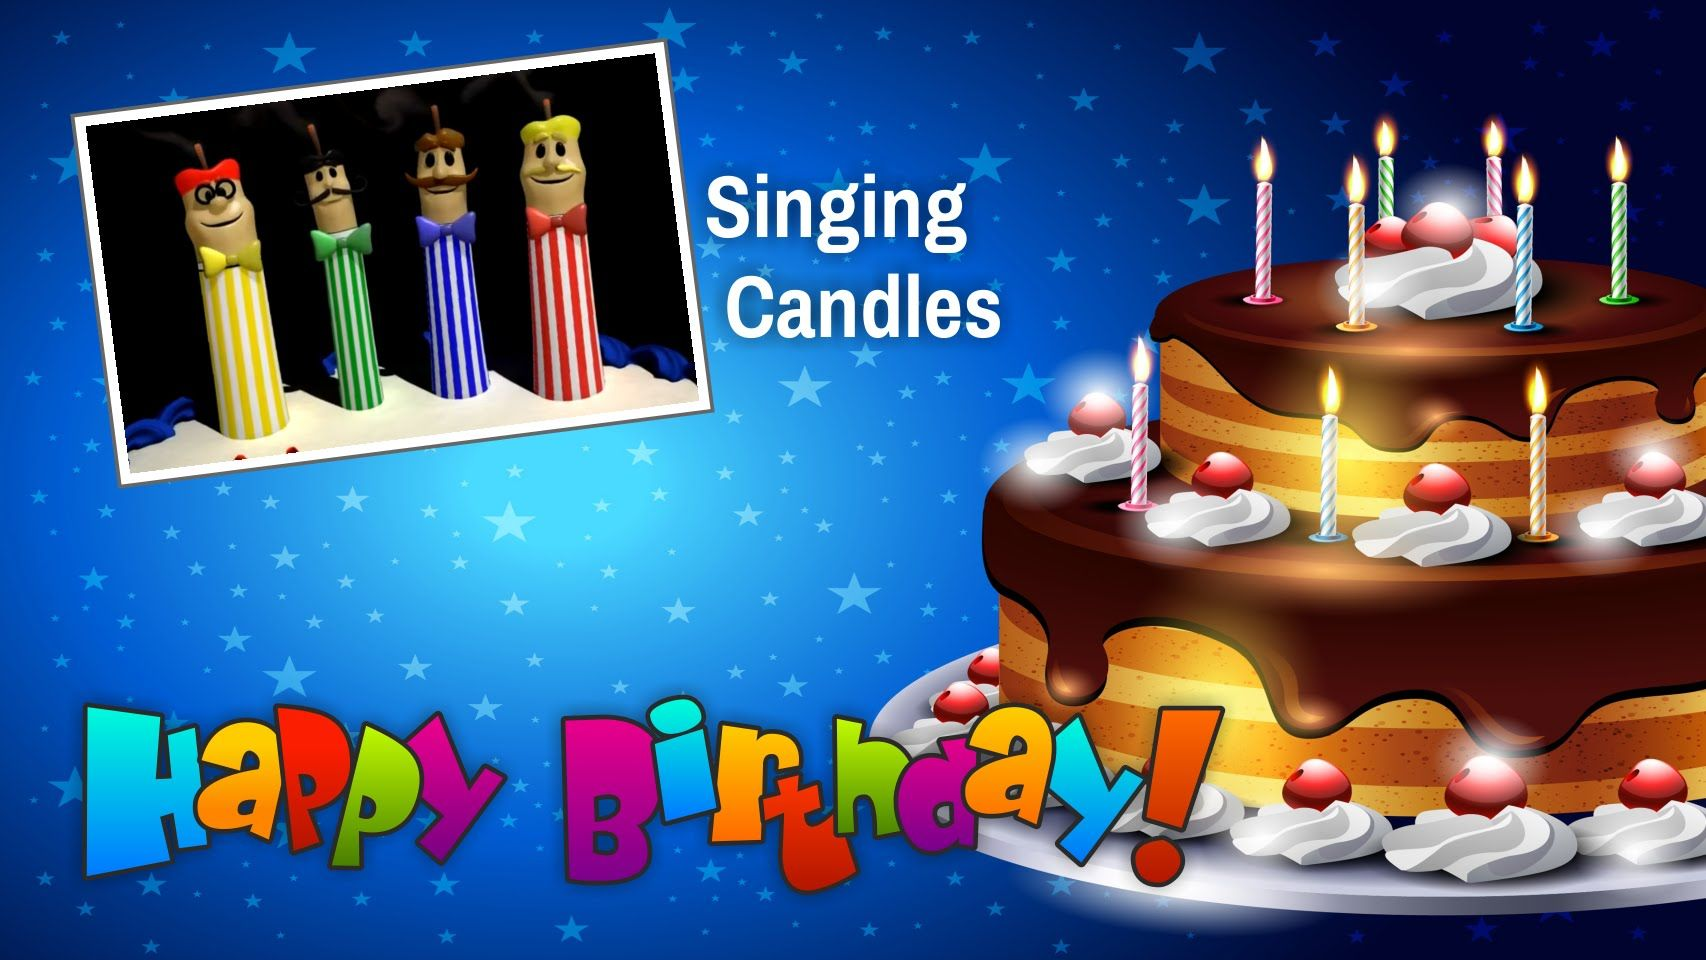 Happy Birthday Song From Singing Candles